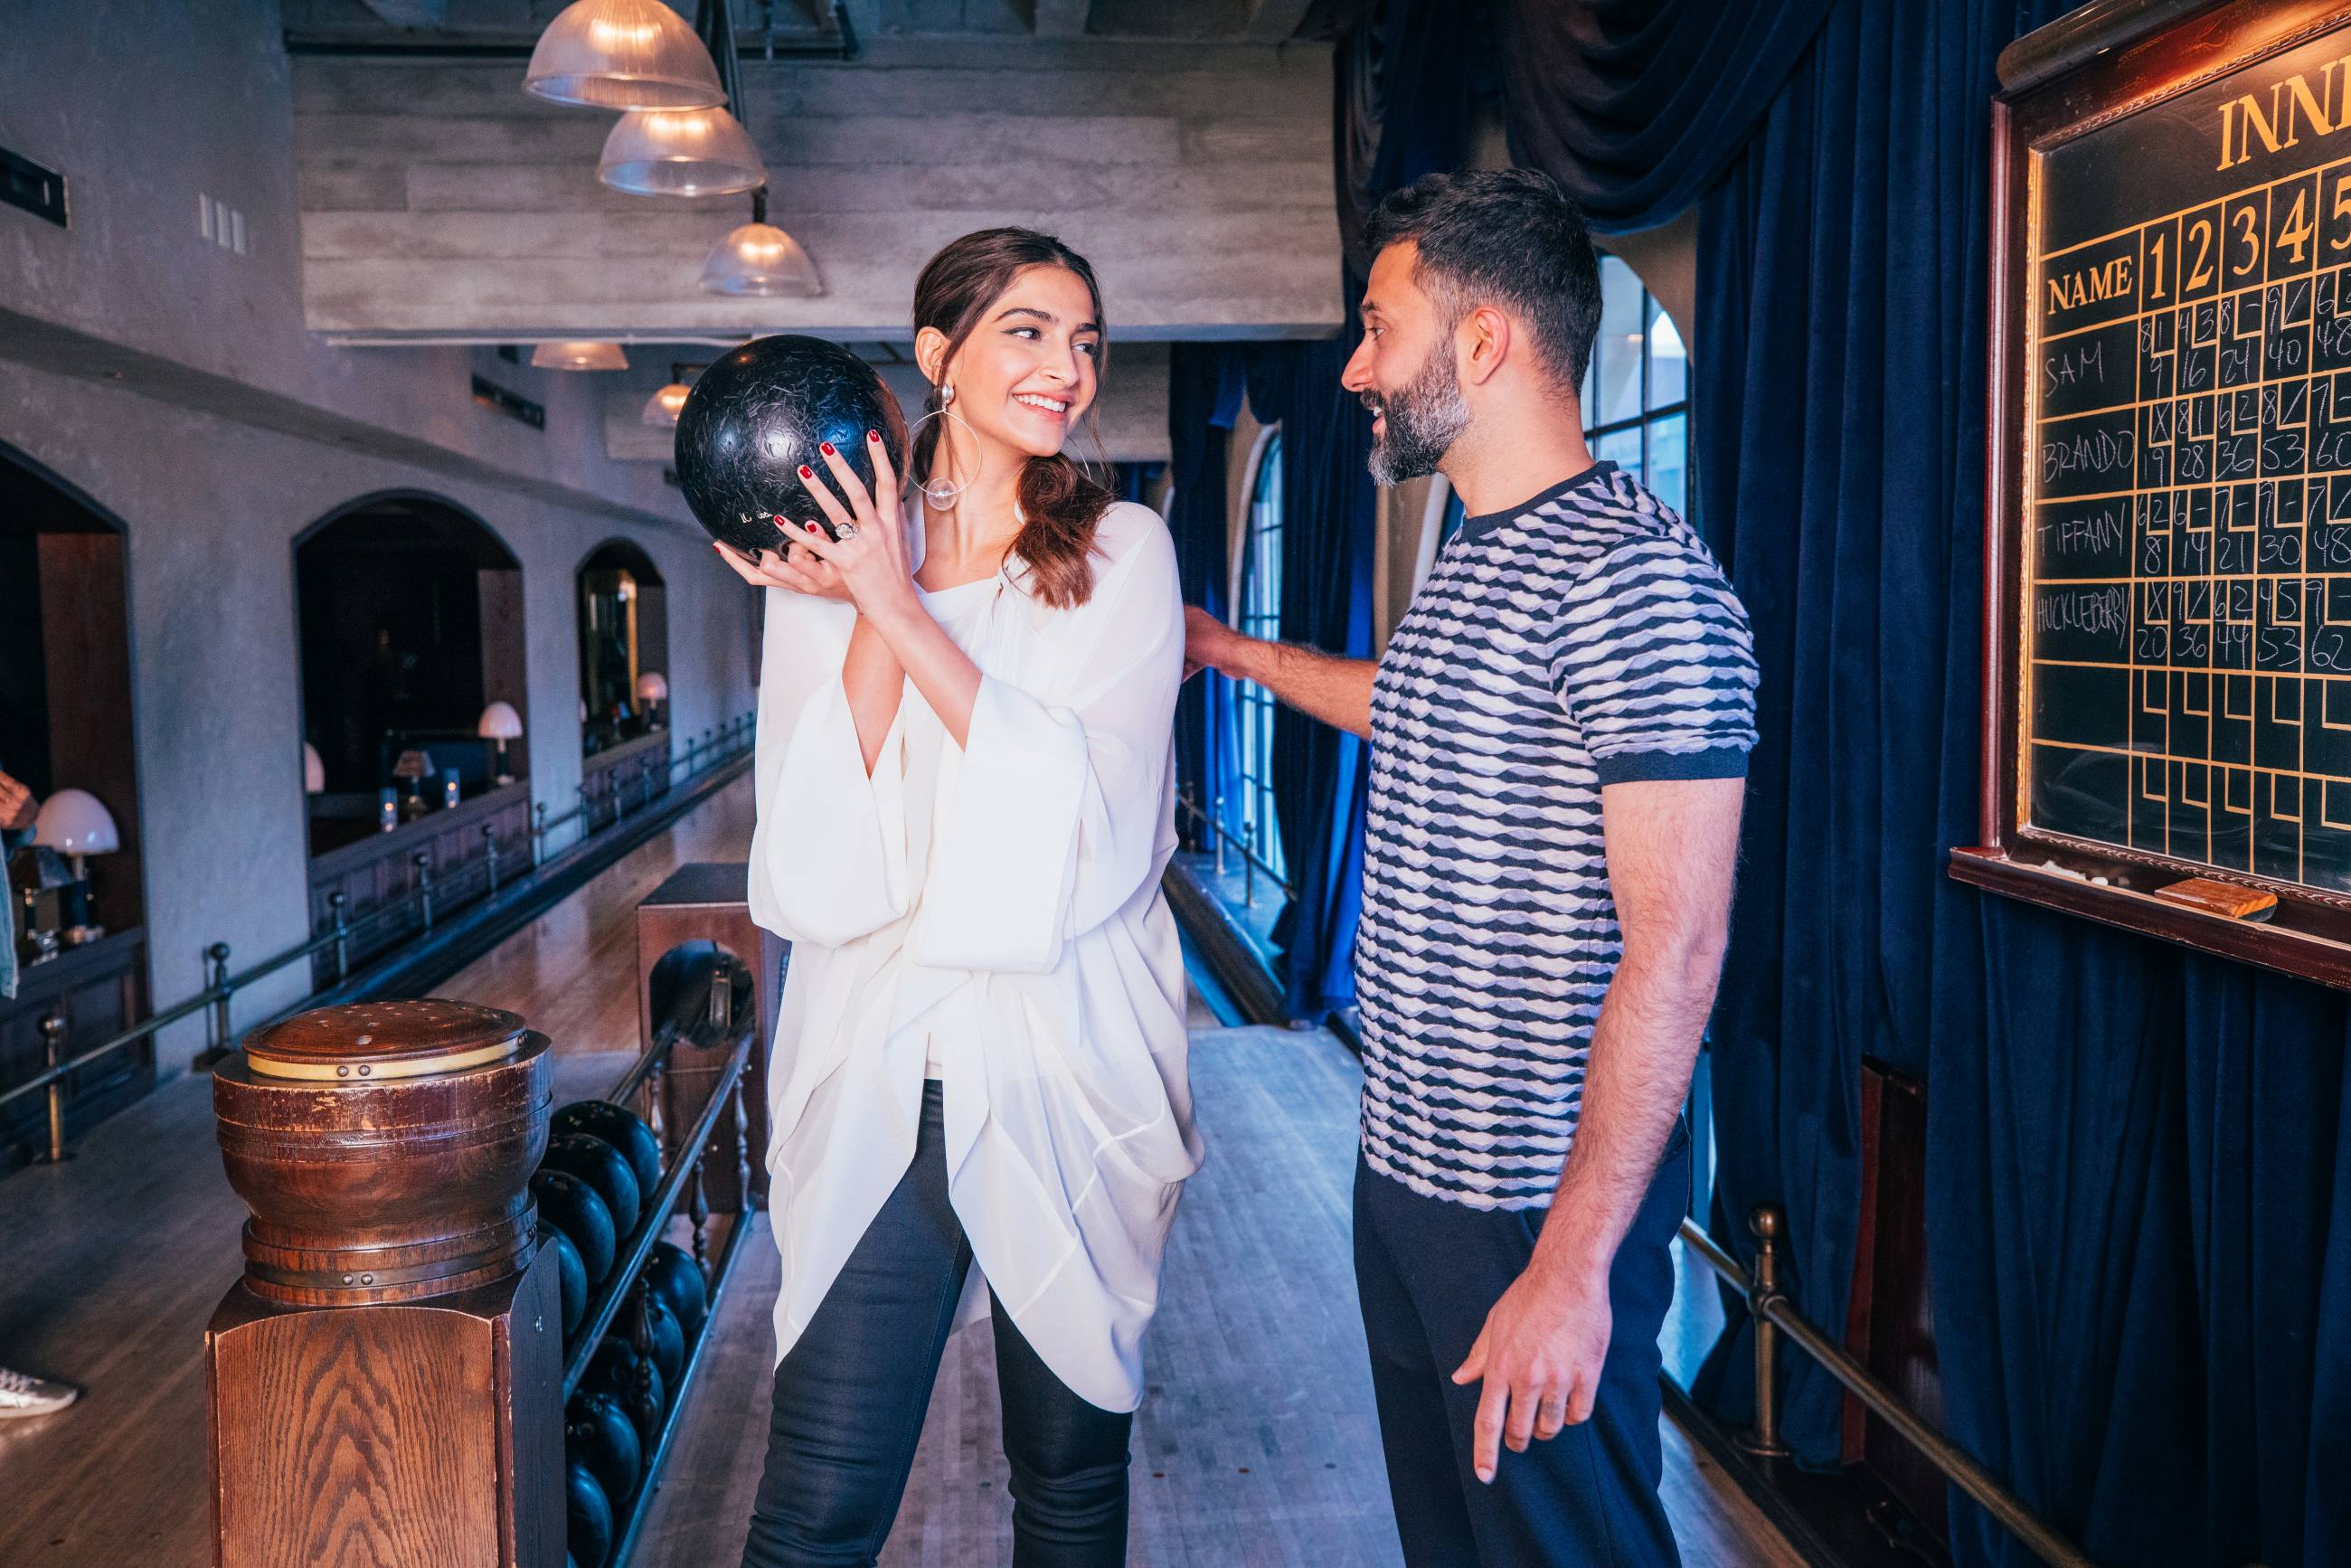 Sonam Kapoor and Anand Ahuja at The Spare Room